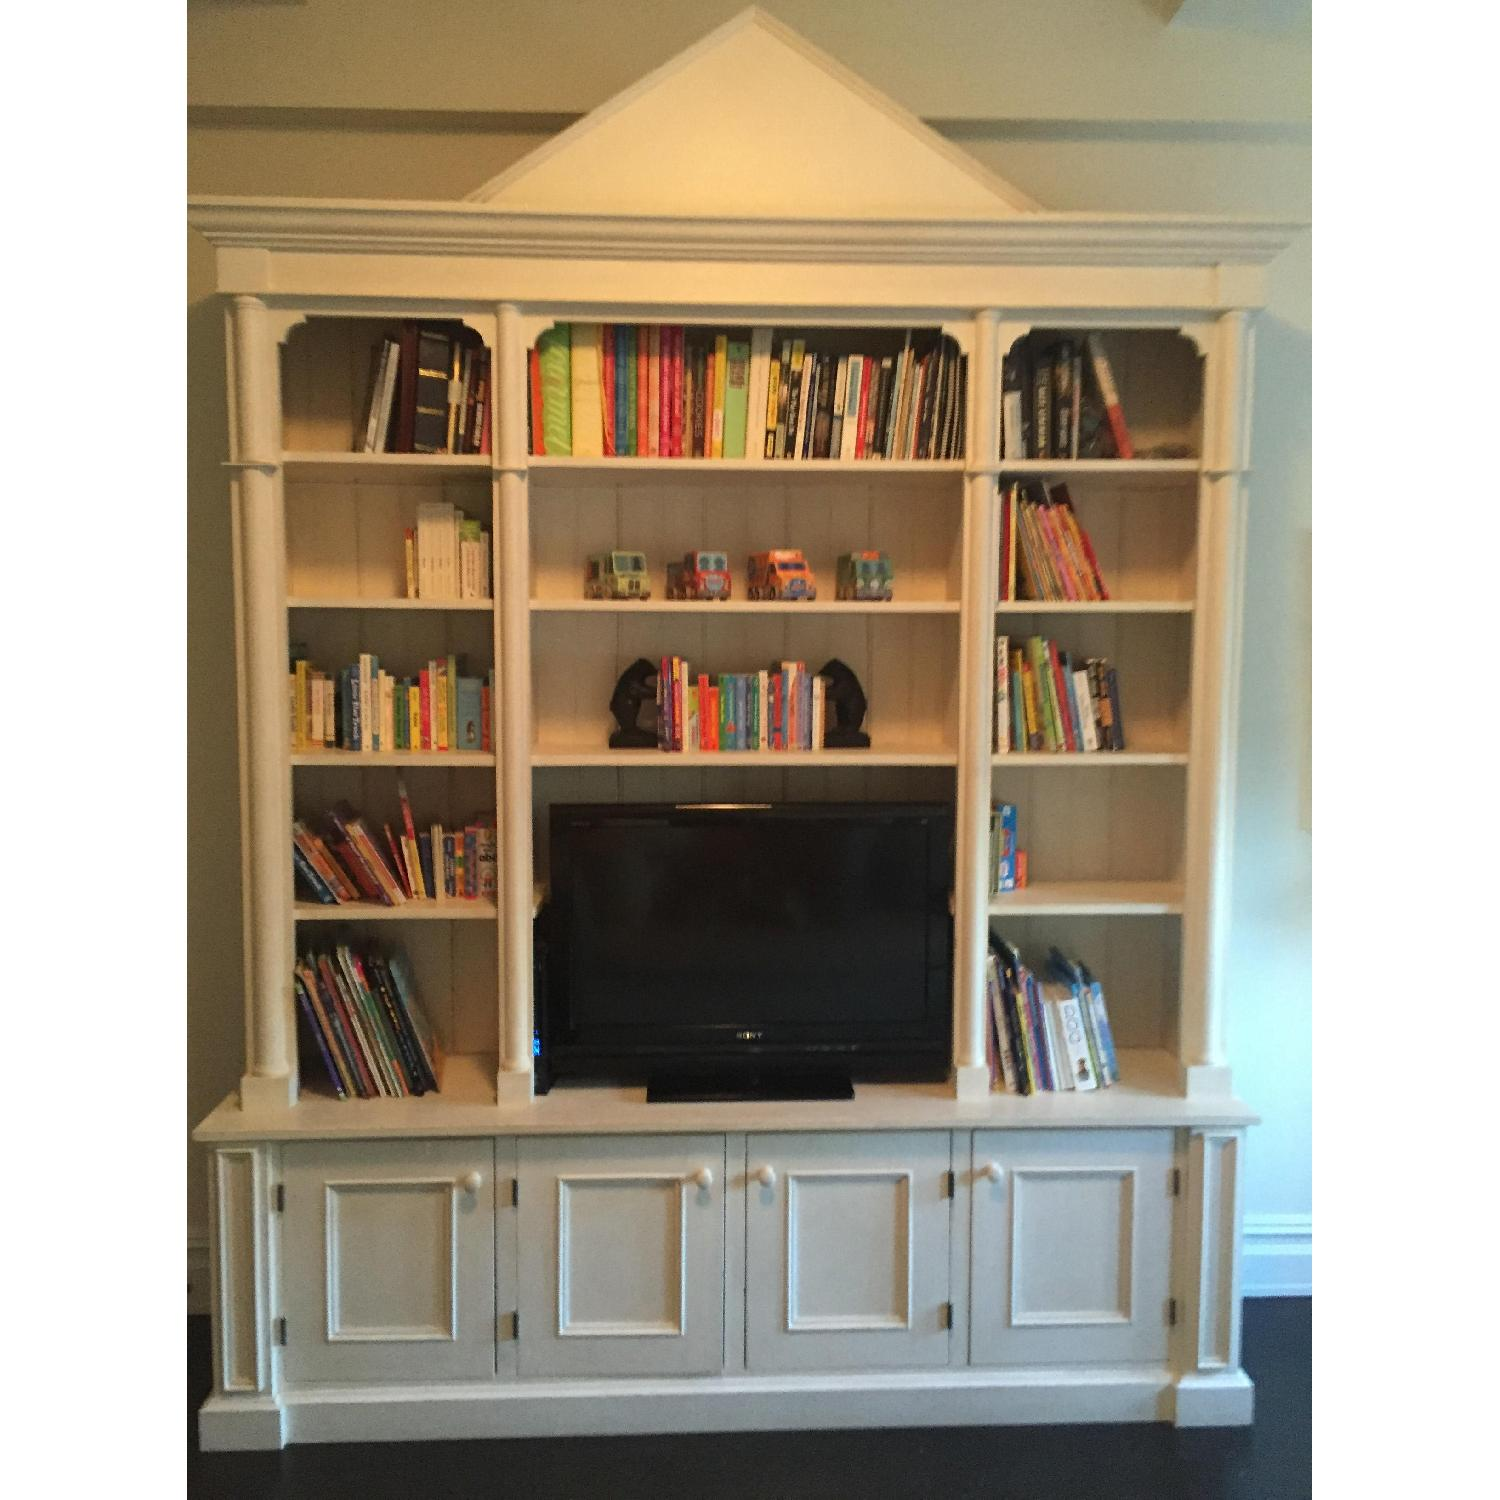 ABC Carpet & Home Toad Hill Collection Bookcase w/ TV Shelf - image-1